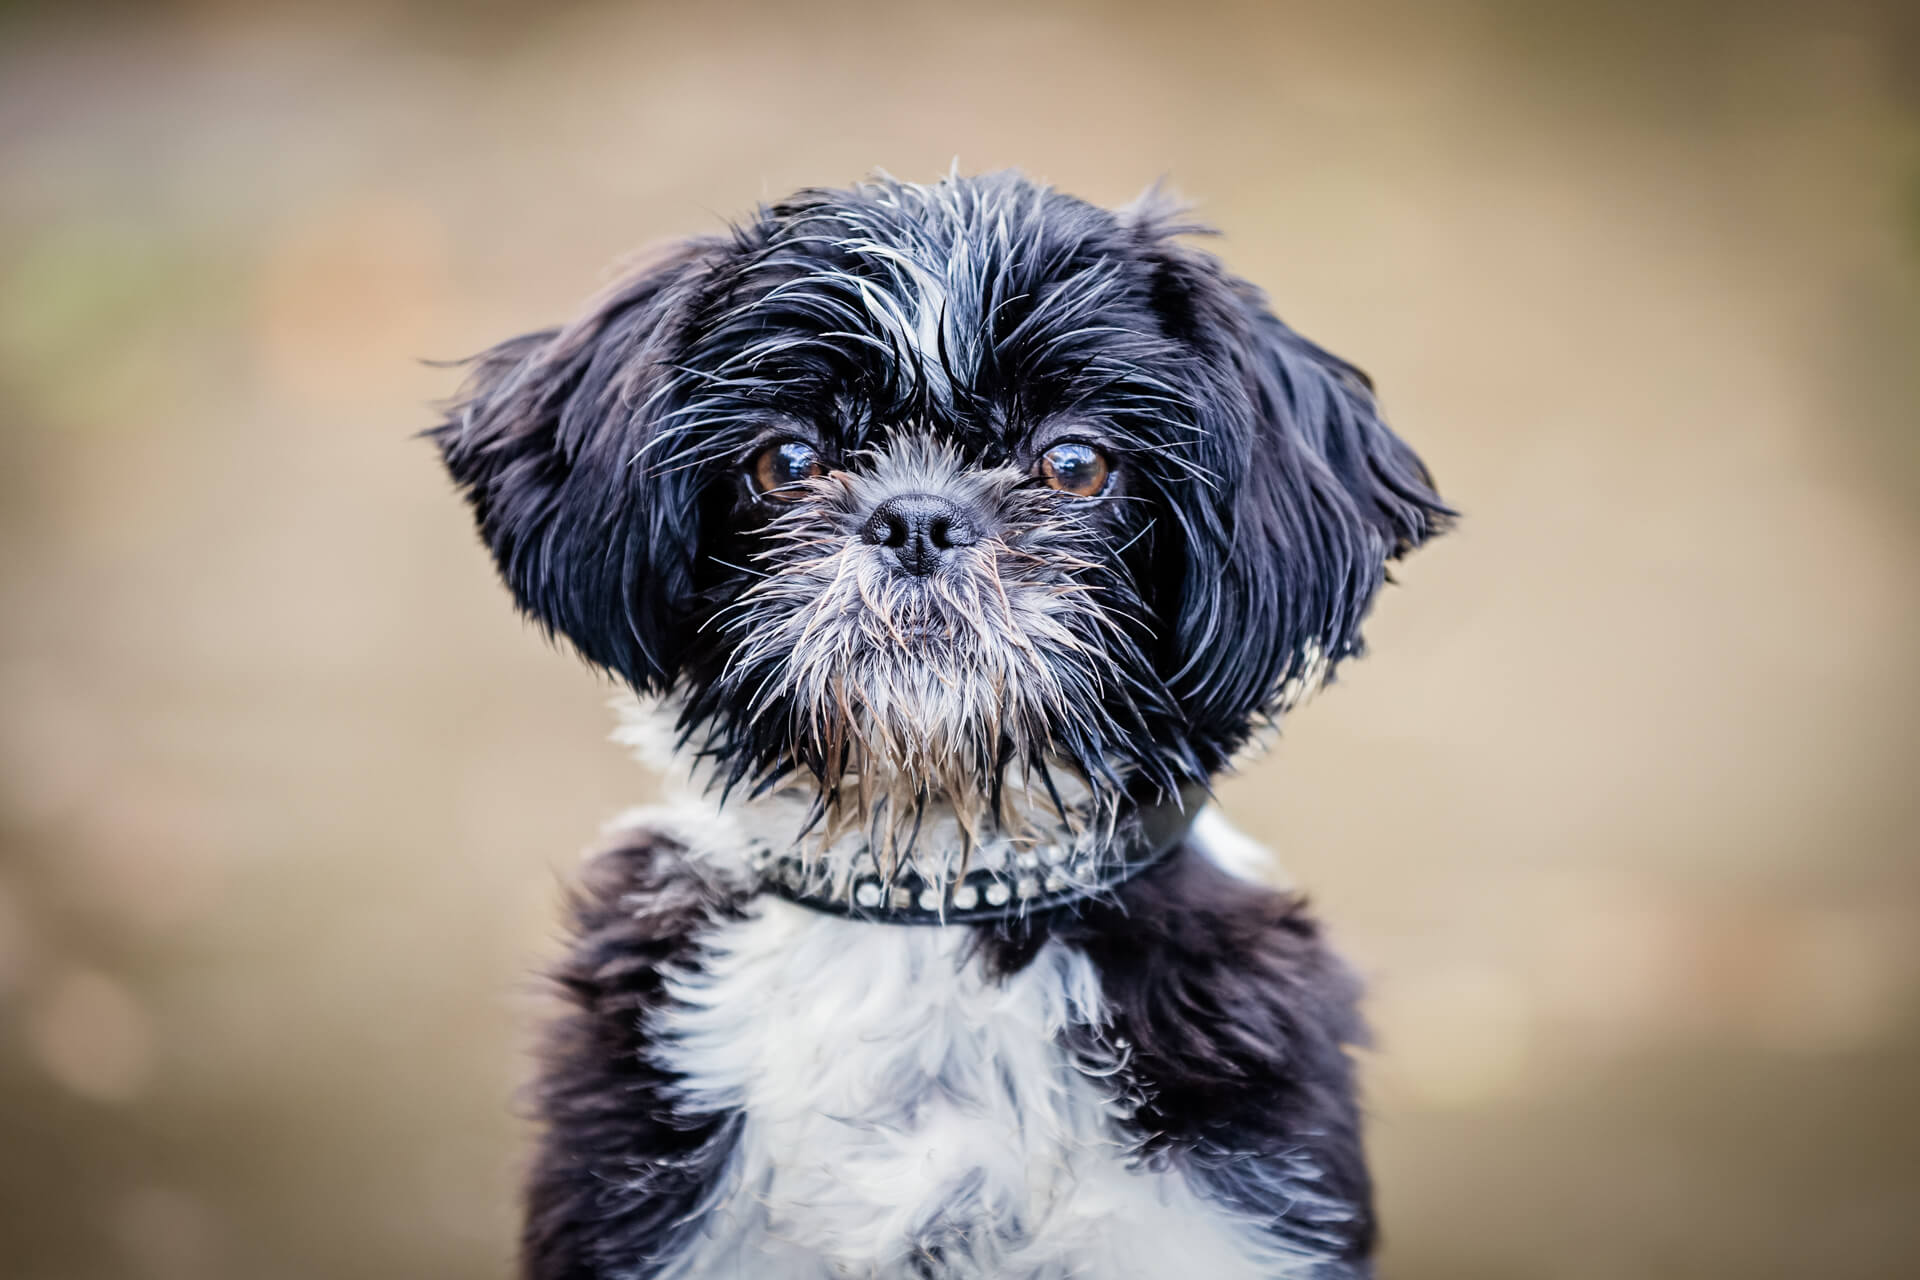 Yorkshire pet photography- face of cute puppy